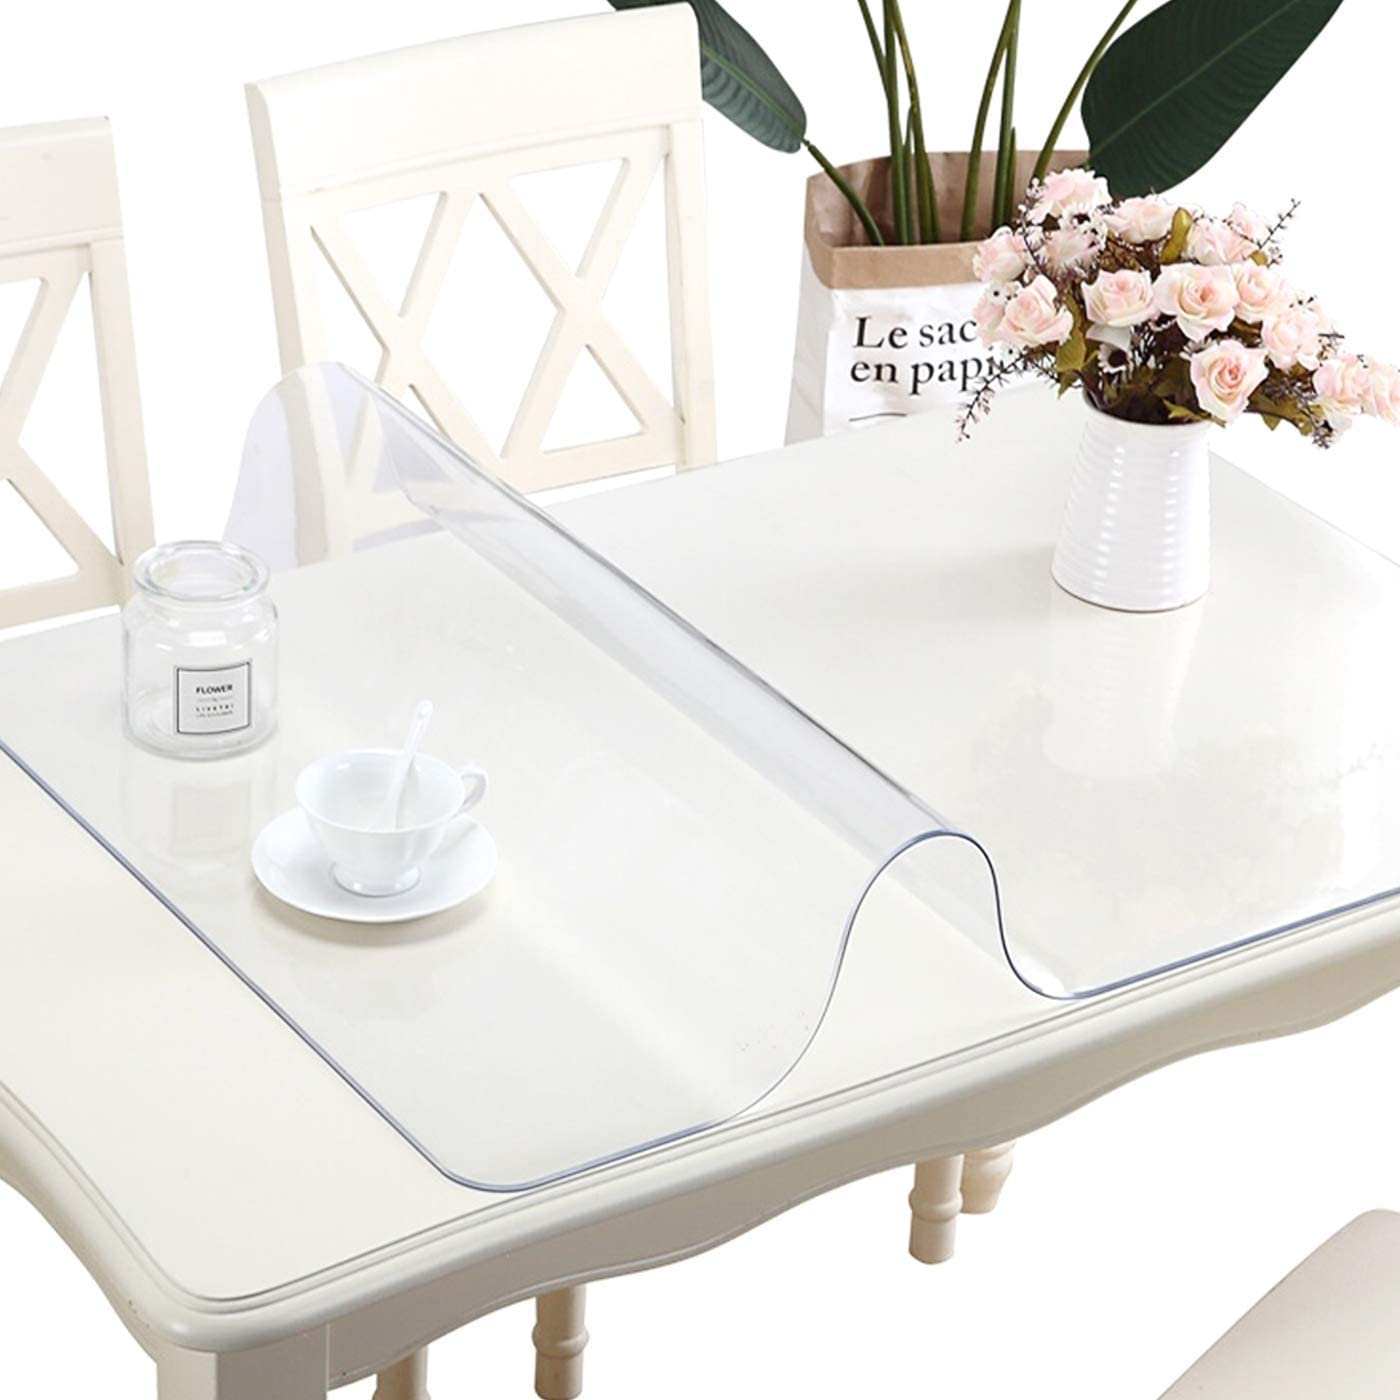 58X58 Inch 1.5mm Thick Square Wood Furniture Surface Protection PVC Clear Tablecloth Clear Plastic Table Protector Crystal Desk Pad PVC Vinyl Dining Tabletop Cover Easy Clean Water Resistant Table Pad